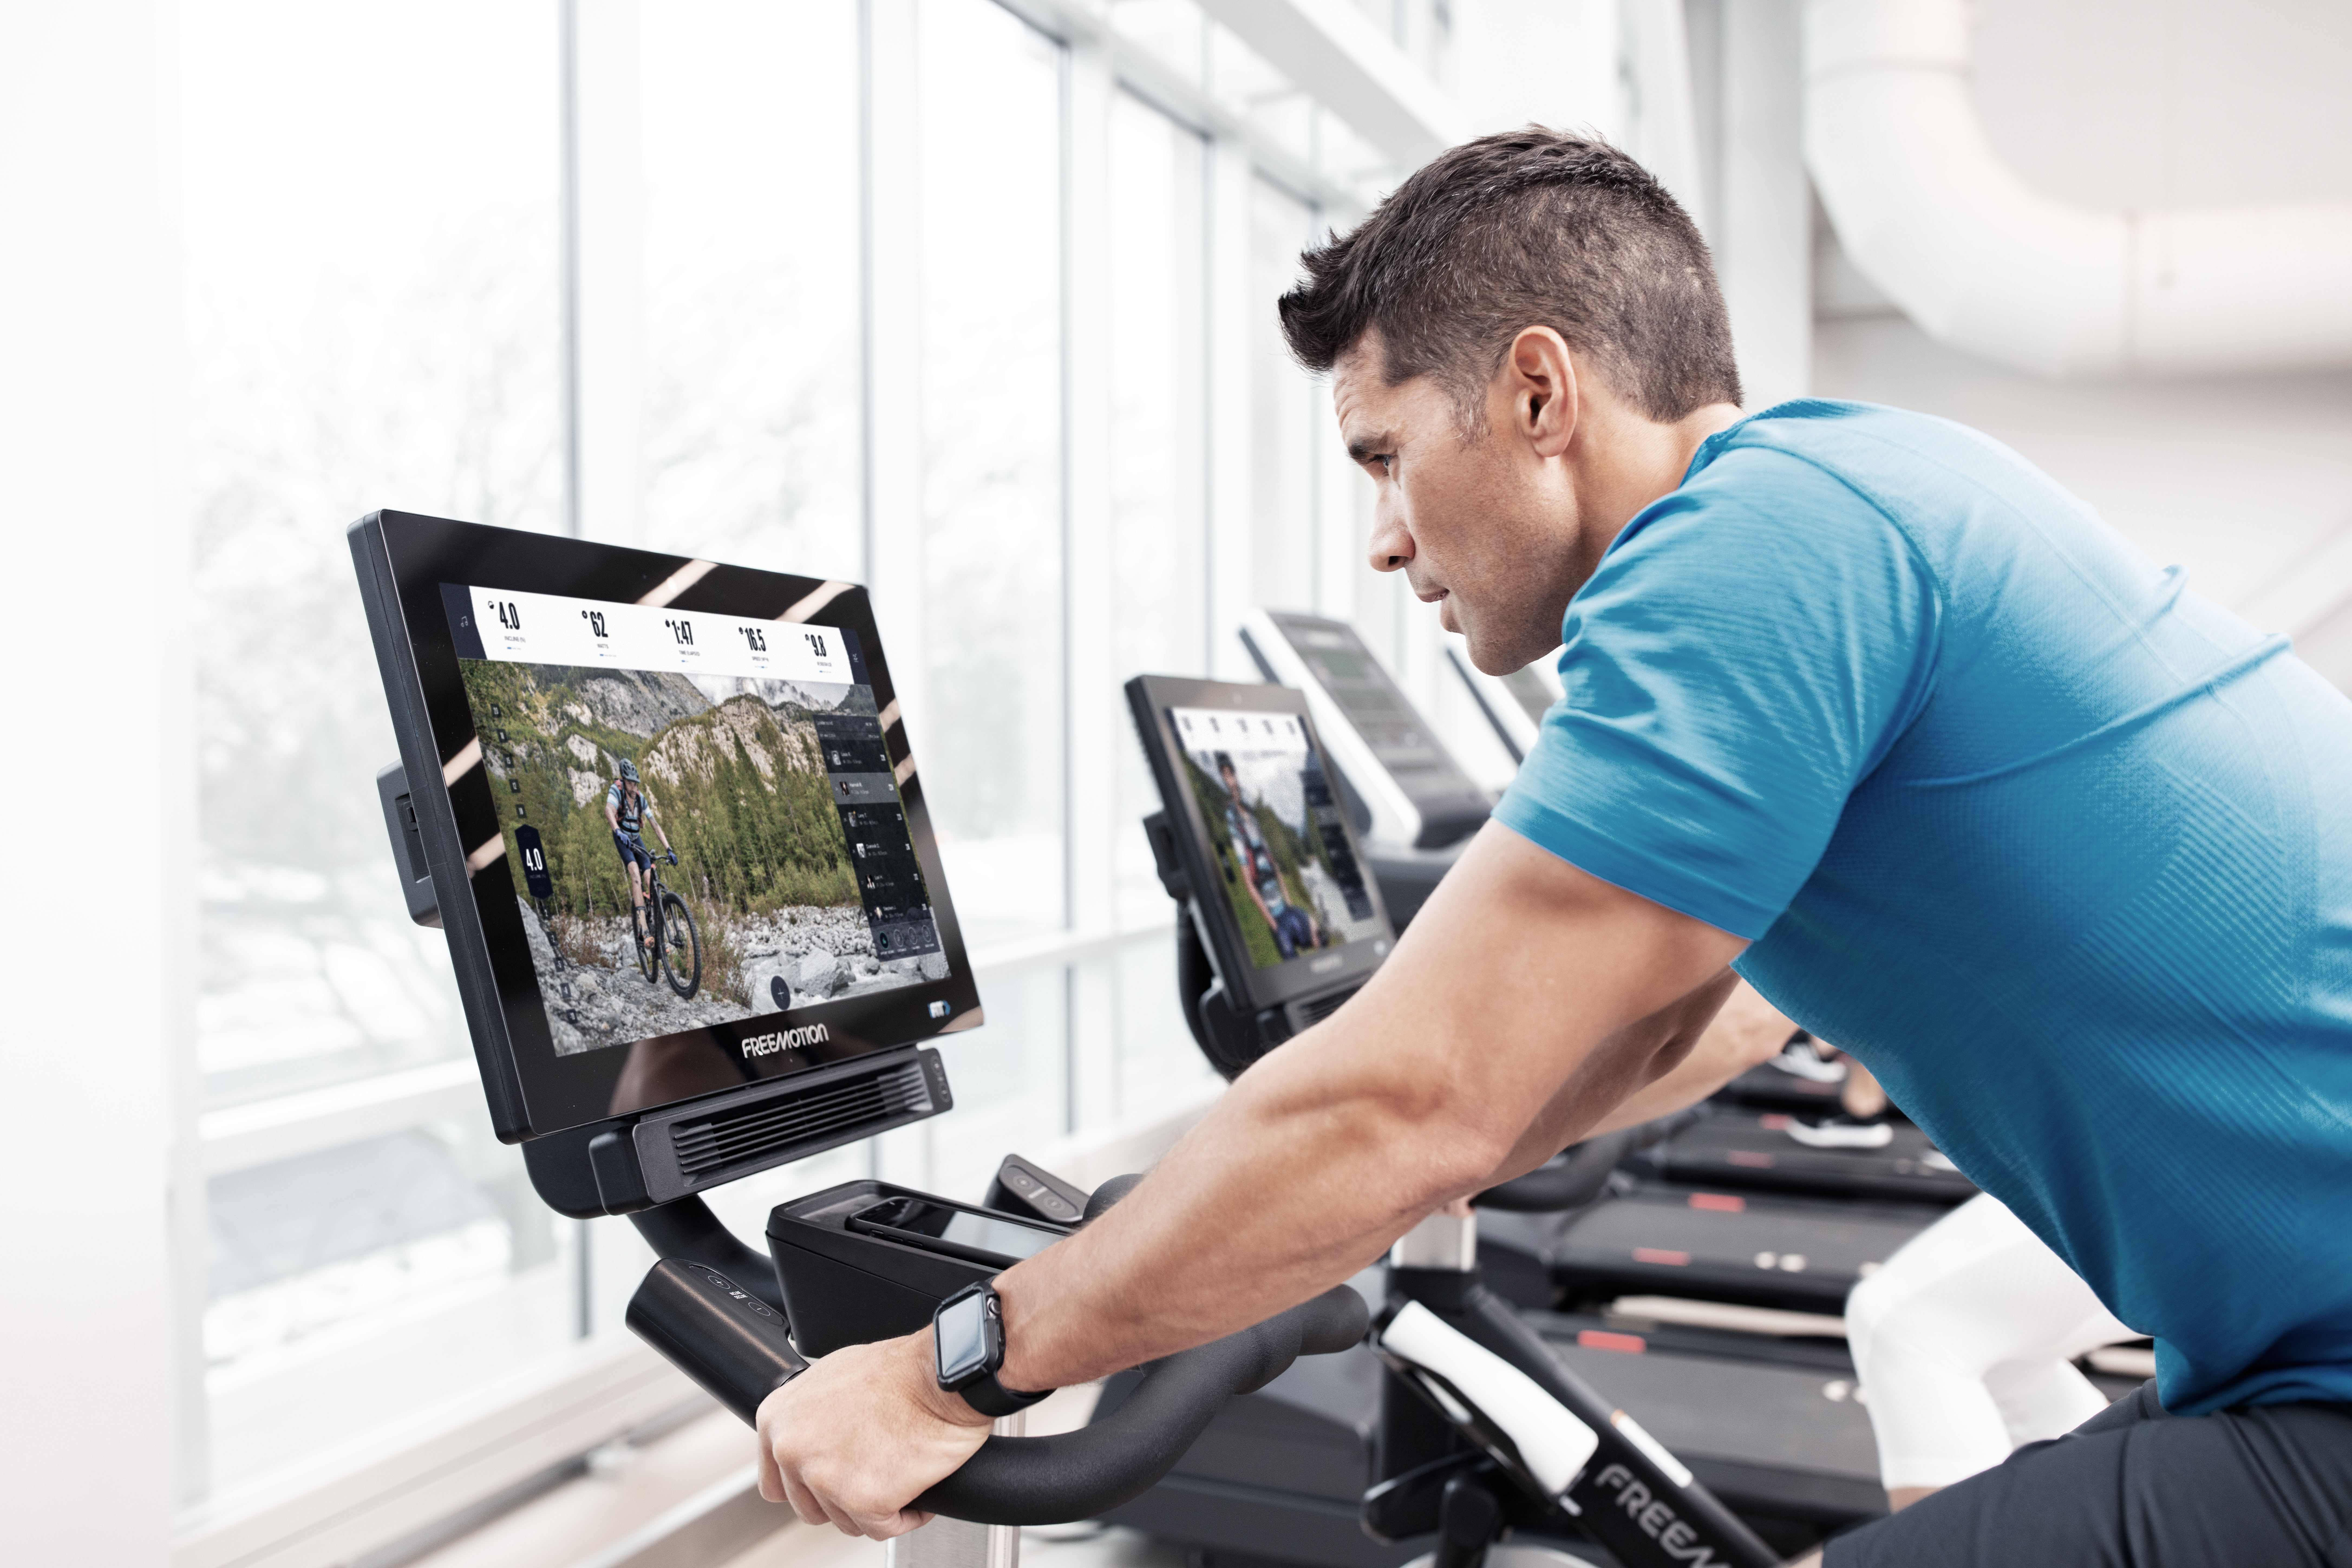 Indoor Cycling is Evolving: The Future is Content